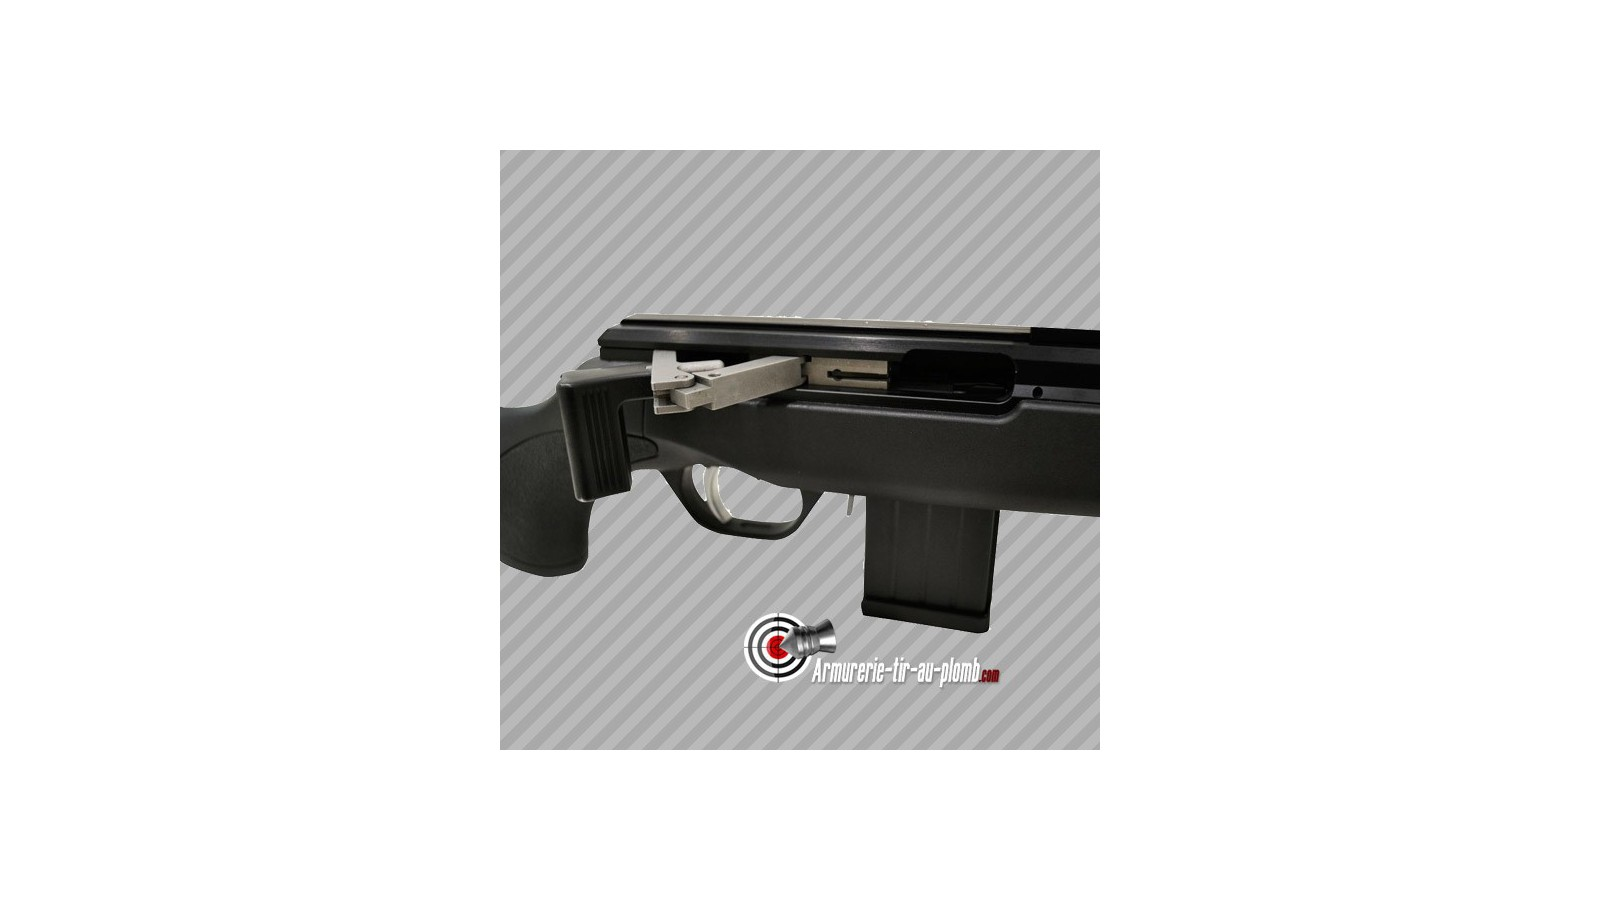 Carabine issc 22 lr synth tique spa for Armurerie salon